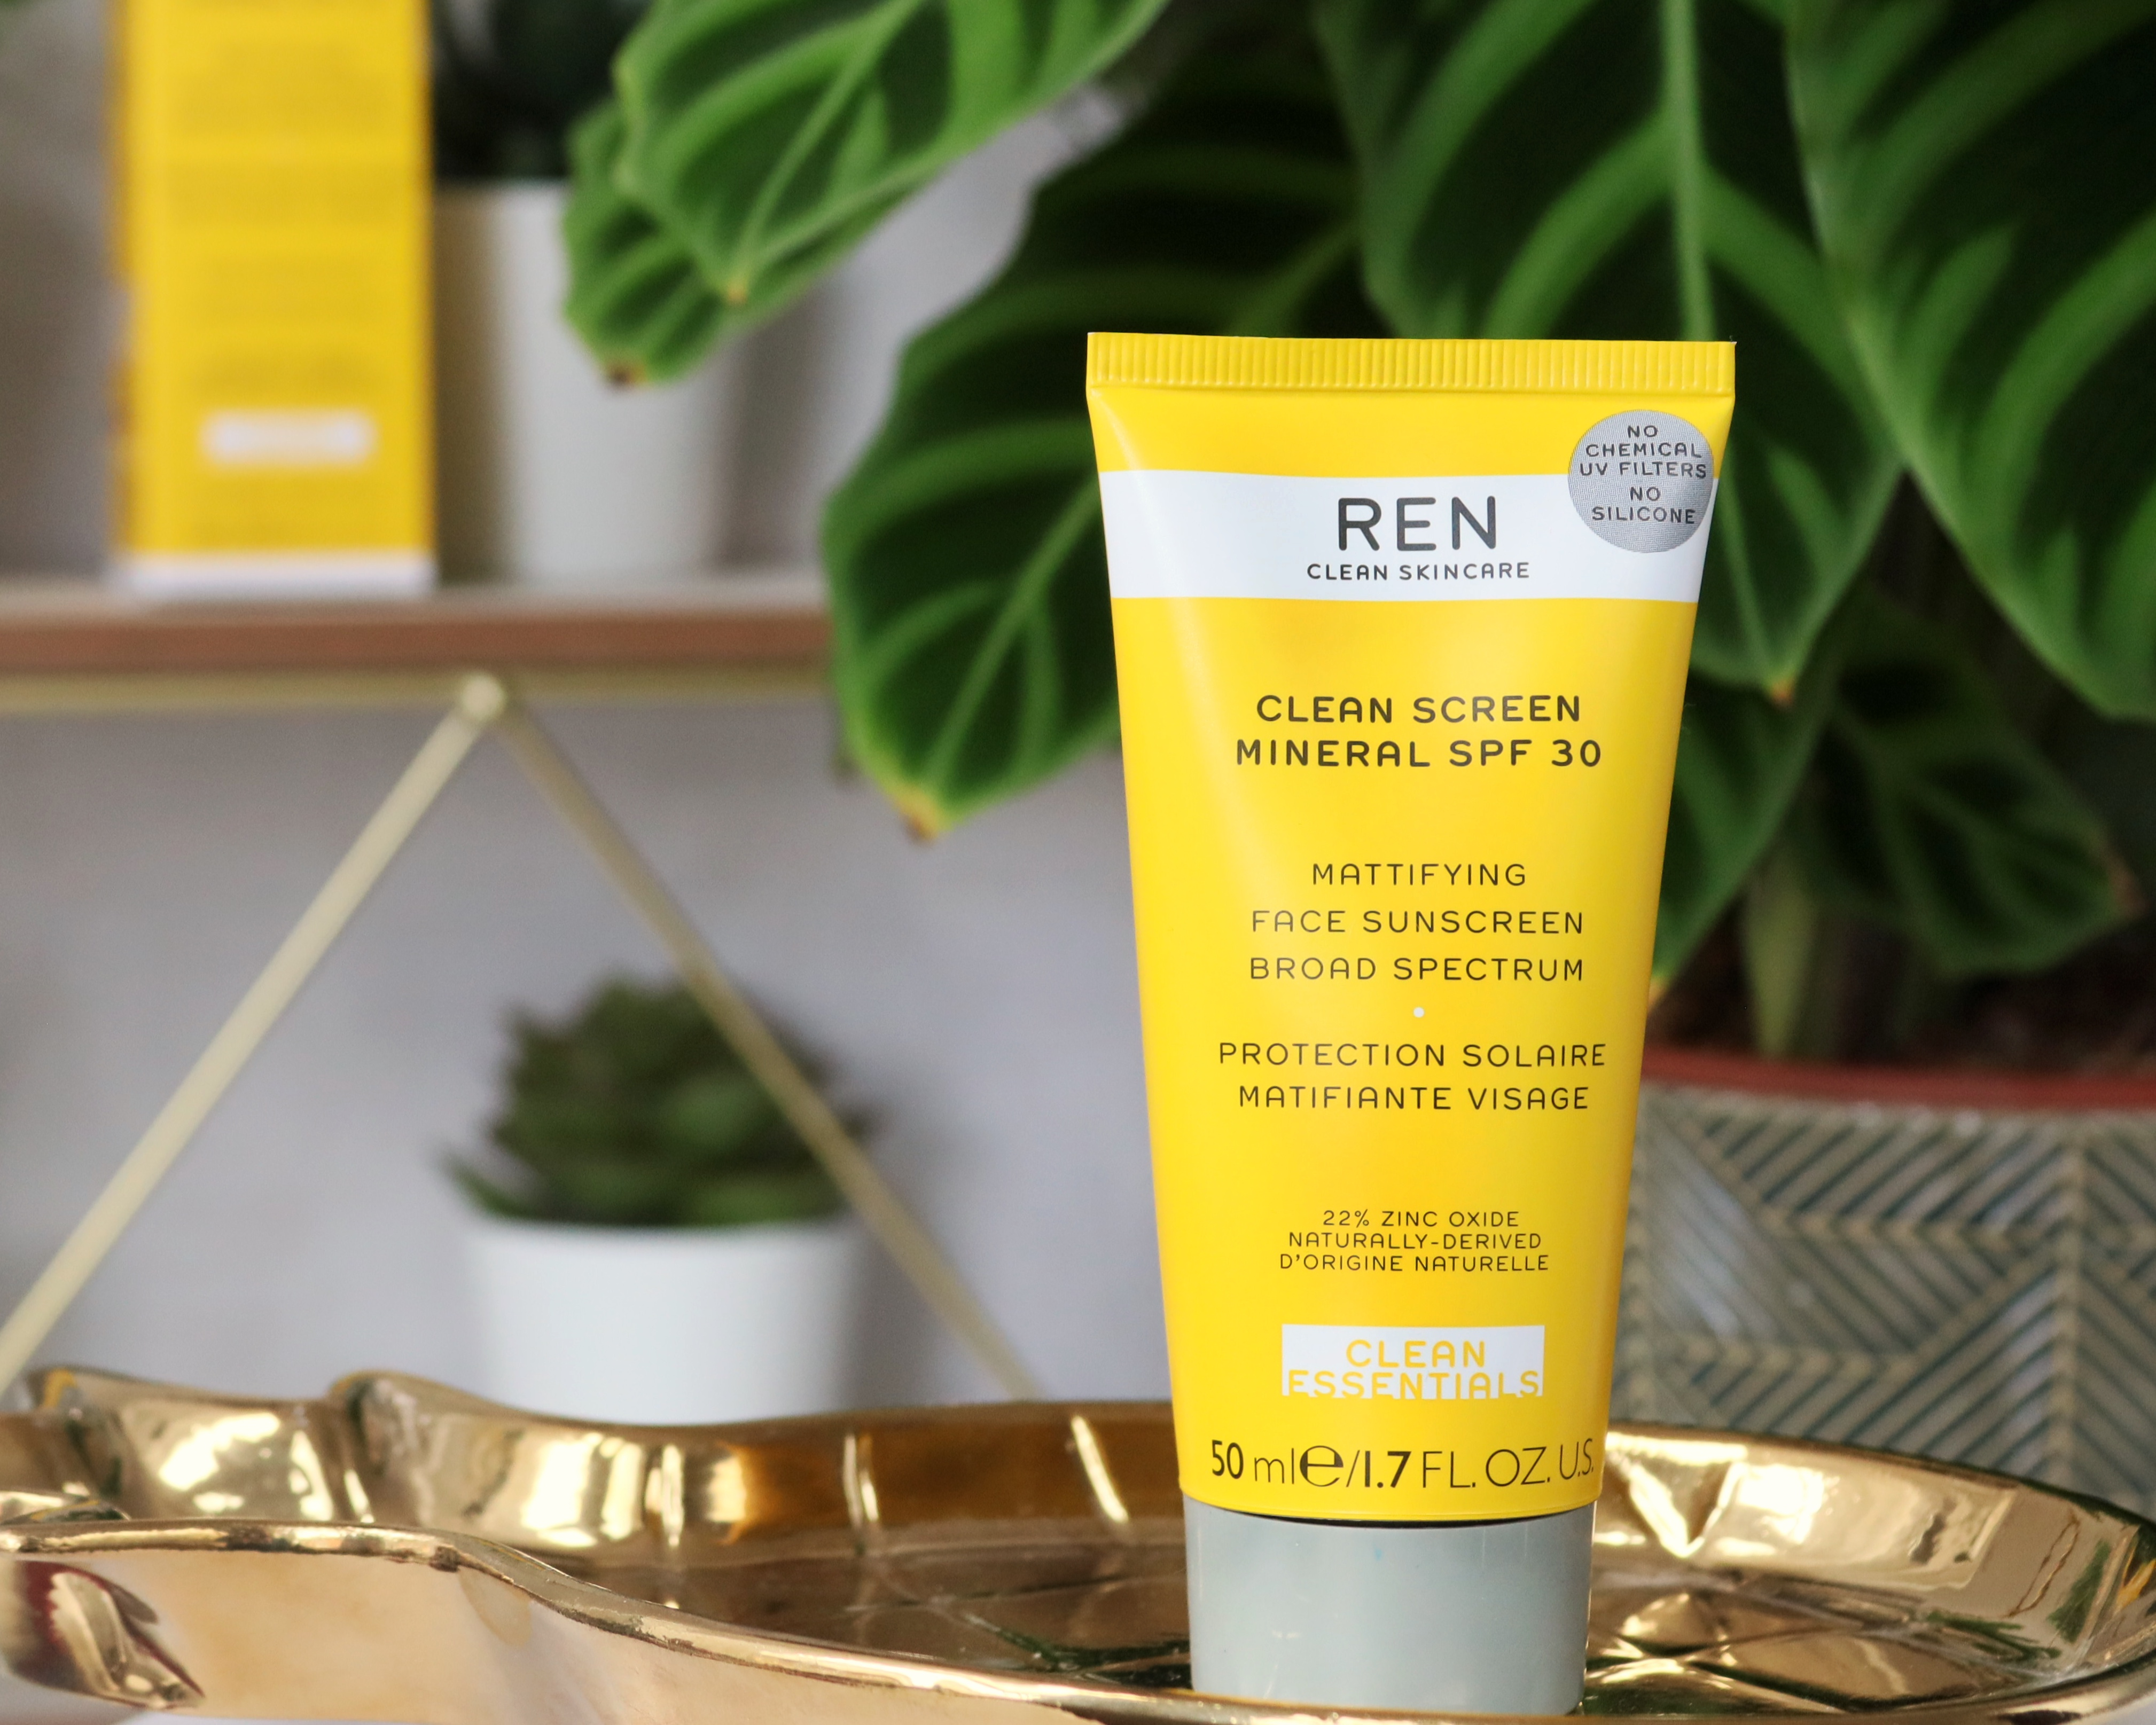 Clean Screen Mineral SPF30 from REN Skincare stood on a gold pineapple shaped tray. Blurred in the background is a plant and the skincare box. The SPF itself is in a squirty tube which is bright yellow with the brand name on and a grey lid.